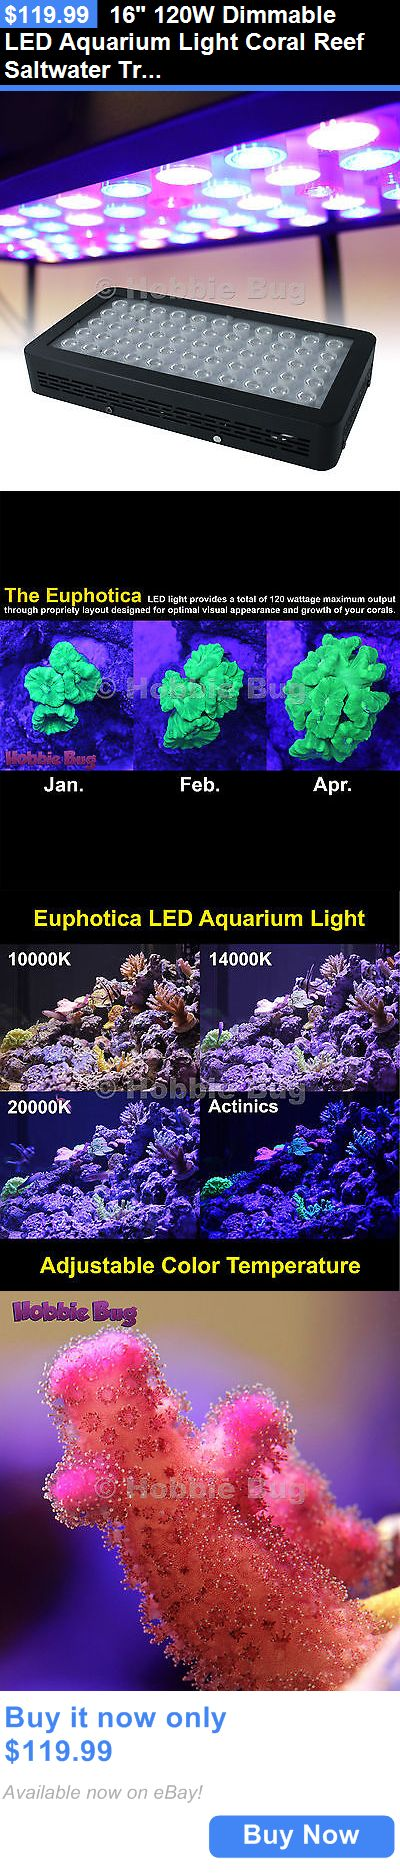 Animals Fish And Aquariums: 16 120W Dimmable Led Aquarium Light Coral Reef Saltwater Tropical Fish Tank BUY IT NOW ONLY: $119.99